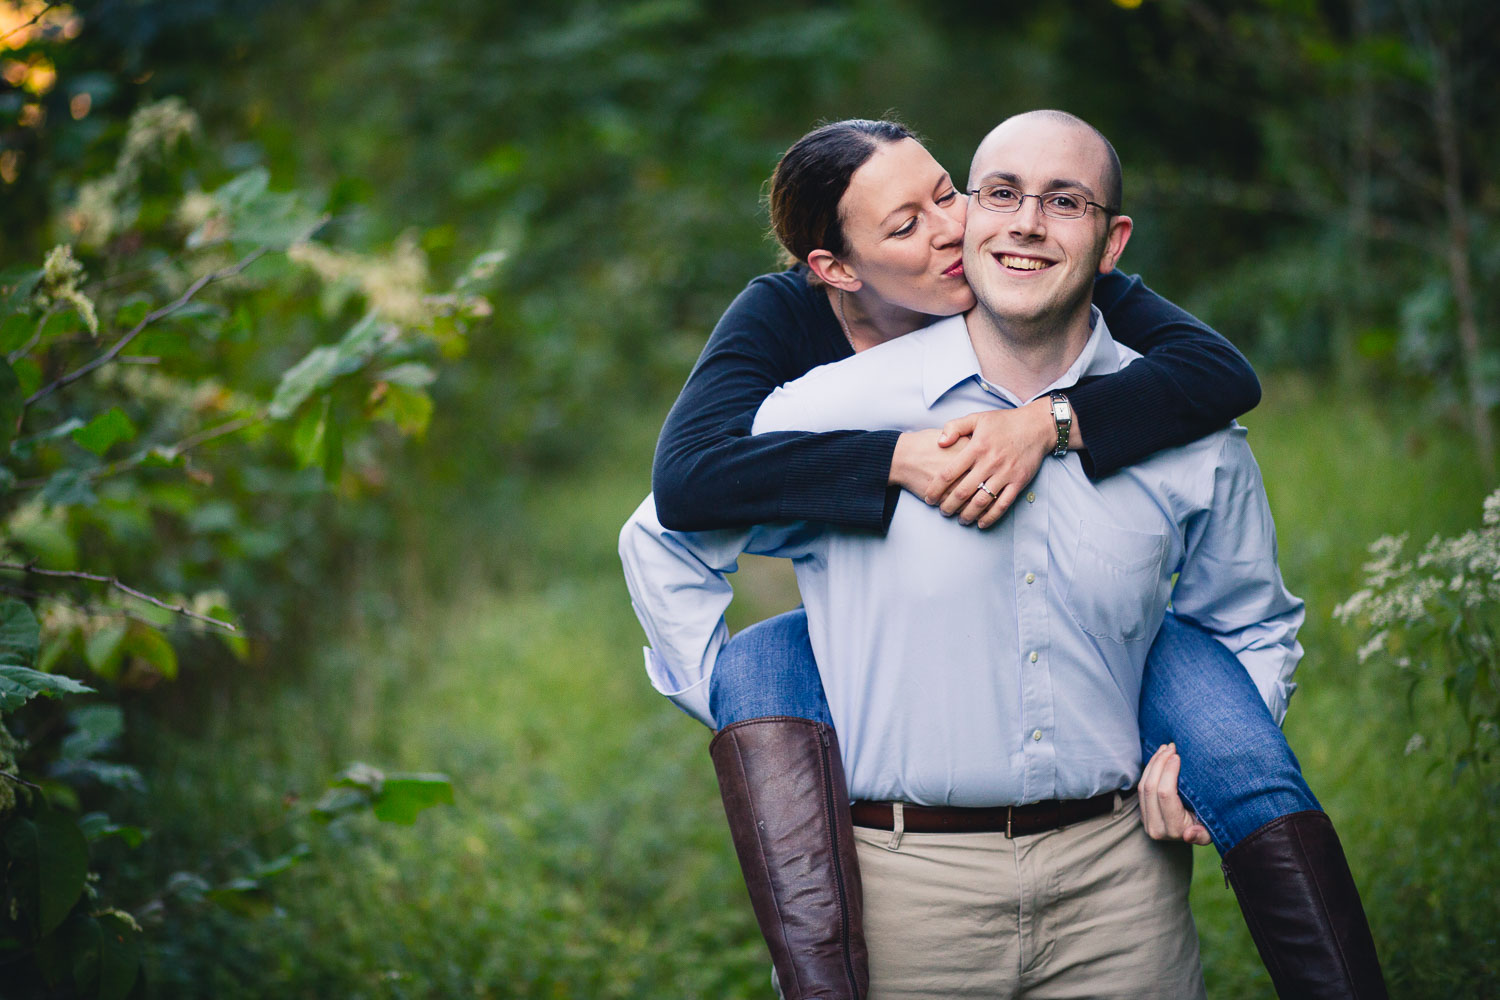 a-beautiful-engagement-session-at-savage-mill-greg-ferko-petruzzo-photography-05